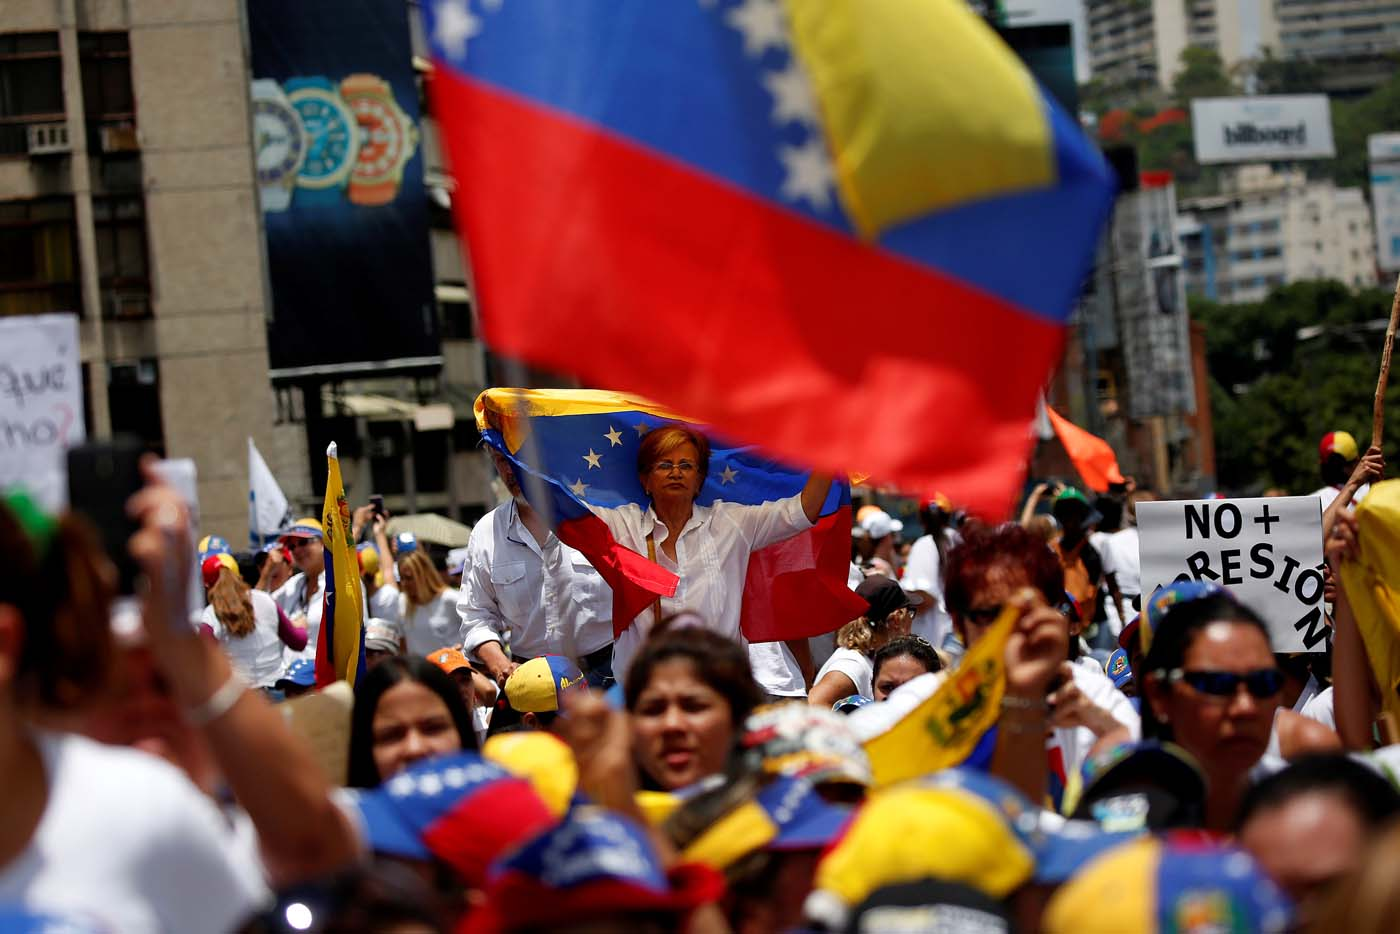 Demonstrators hold Venezuelan flags as they attend a women's march to protest against President Nicolas Maduro's government in Caracas, Venezuela, May 6, 2017. REUTERS/Carlos Garcia Rawlins